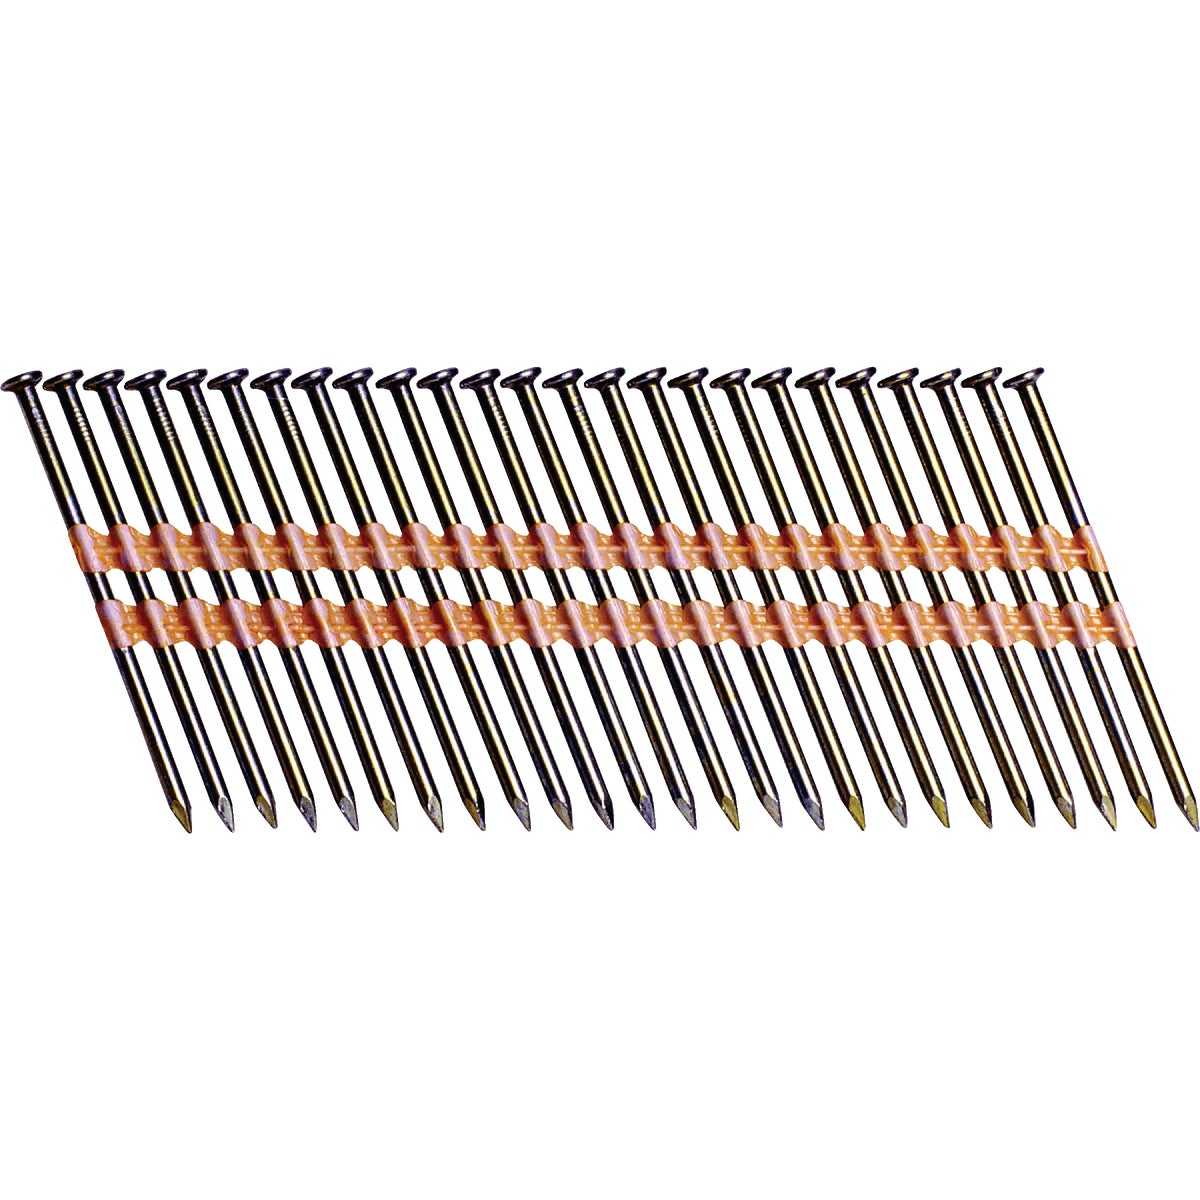 3-1/4X.120 STICK NAIL - GR444SHG by Prime Source Pneumat